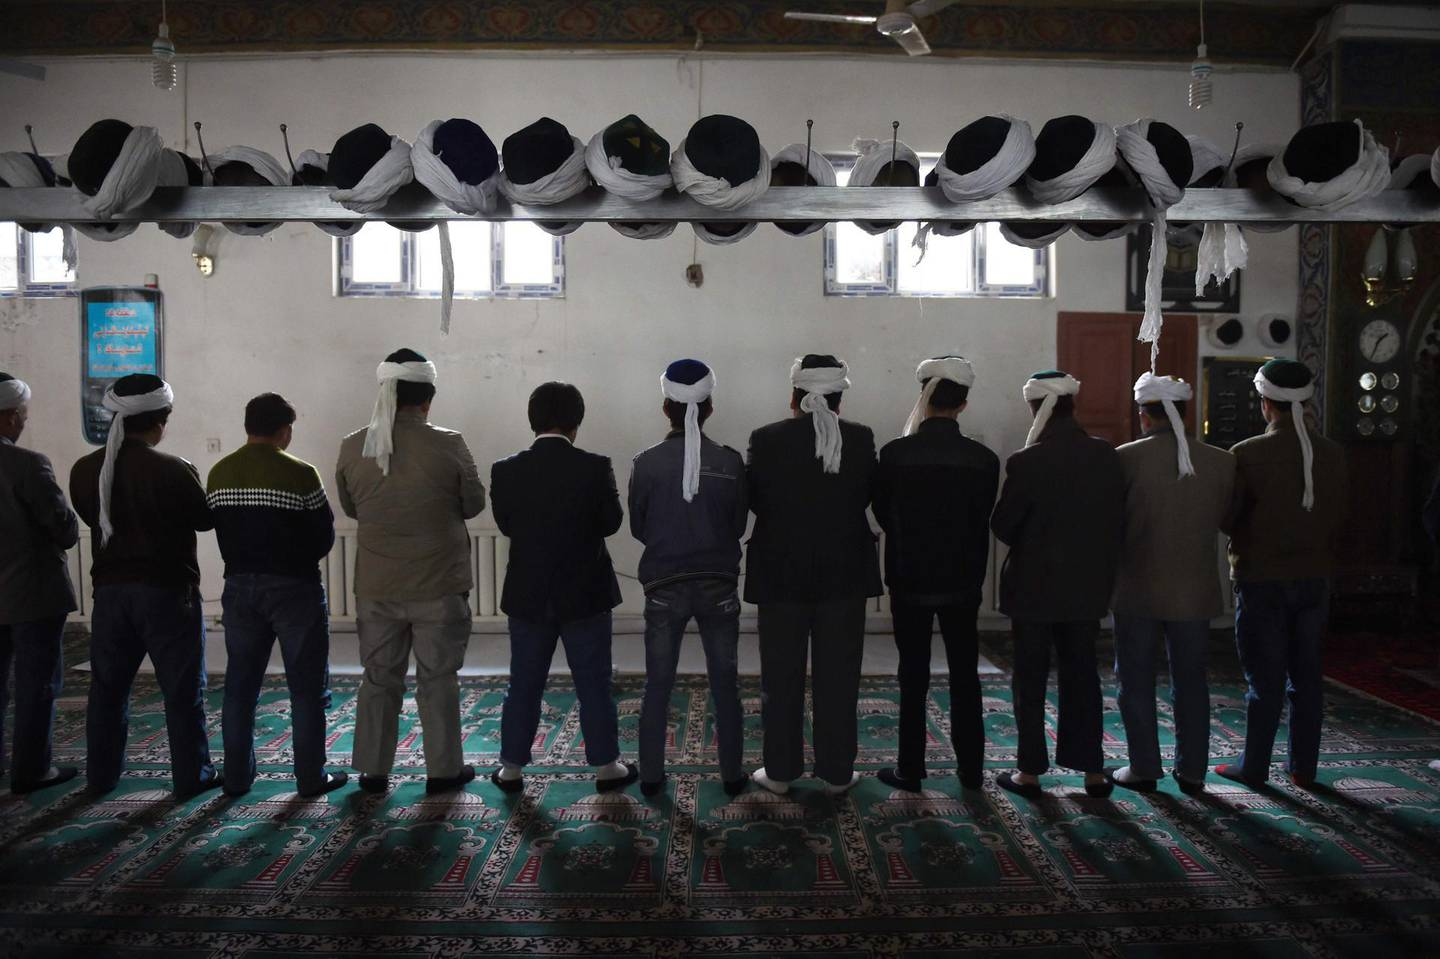 """TOPSHOT - This photo taken on April 16, 2015 shows Uighur men praying in a mosque in Hotan, in China's western Xinjiang region.  The prefecture in the region's south has seen an explosion in the construction of """"vocational training"""" centres for the region's Muslim minorities. But the centres have come under international scrutiny, with rights activists describing them as political re-education camps holding as many as one million ethnic Uighurs and other Muslim minorities. - TO GO WITH China-politics-rights-Xinjiang, FOCUS by Ben Dooley  / AFP / Greg Baker / TO GO WITH China-politics-rights-Xinjiang, FOCUS by Ben Dooley"""